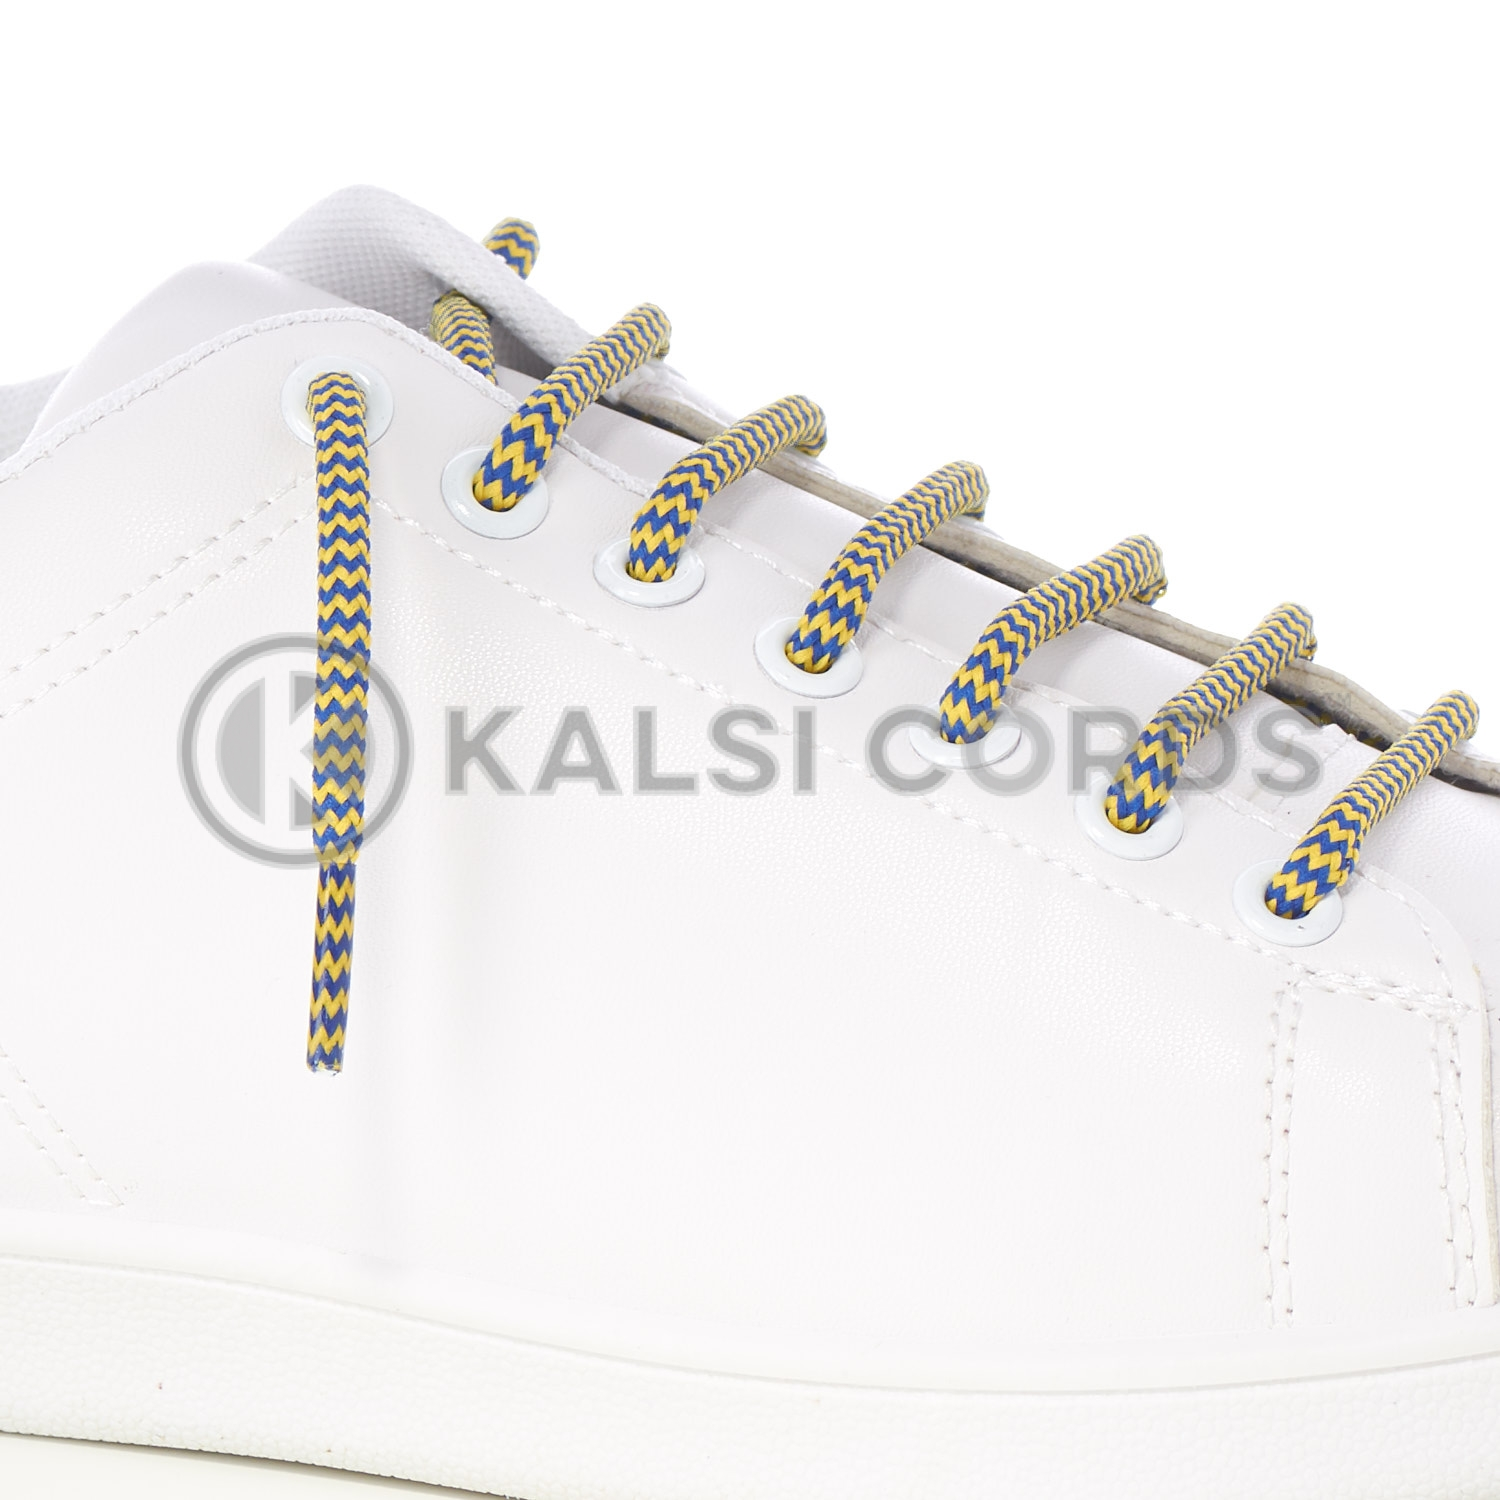 T621 5mm Round Cord Shoe Lace Royal Blue Yellow Herringbone Pattern Kids Trainers Adults Hiking Walking Boots Kalsi Cords